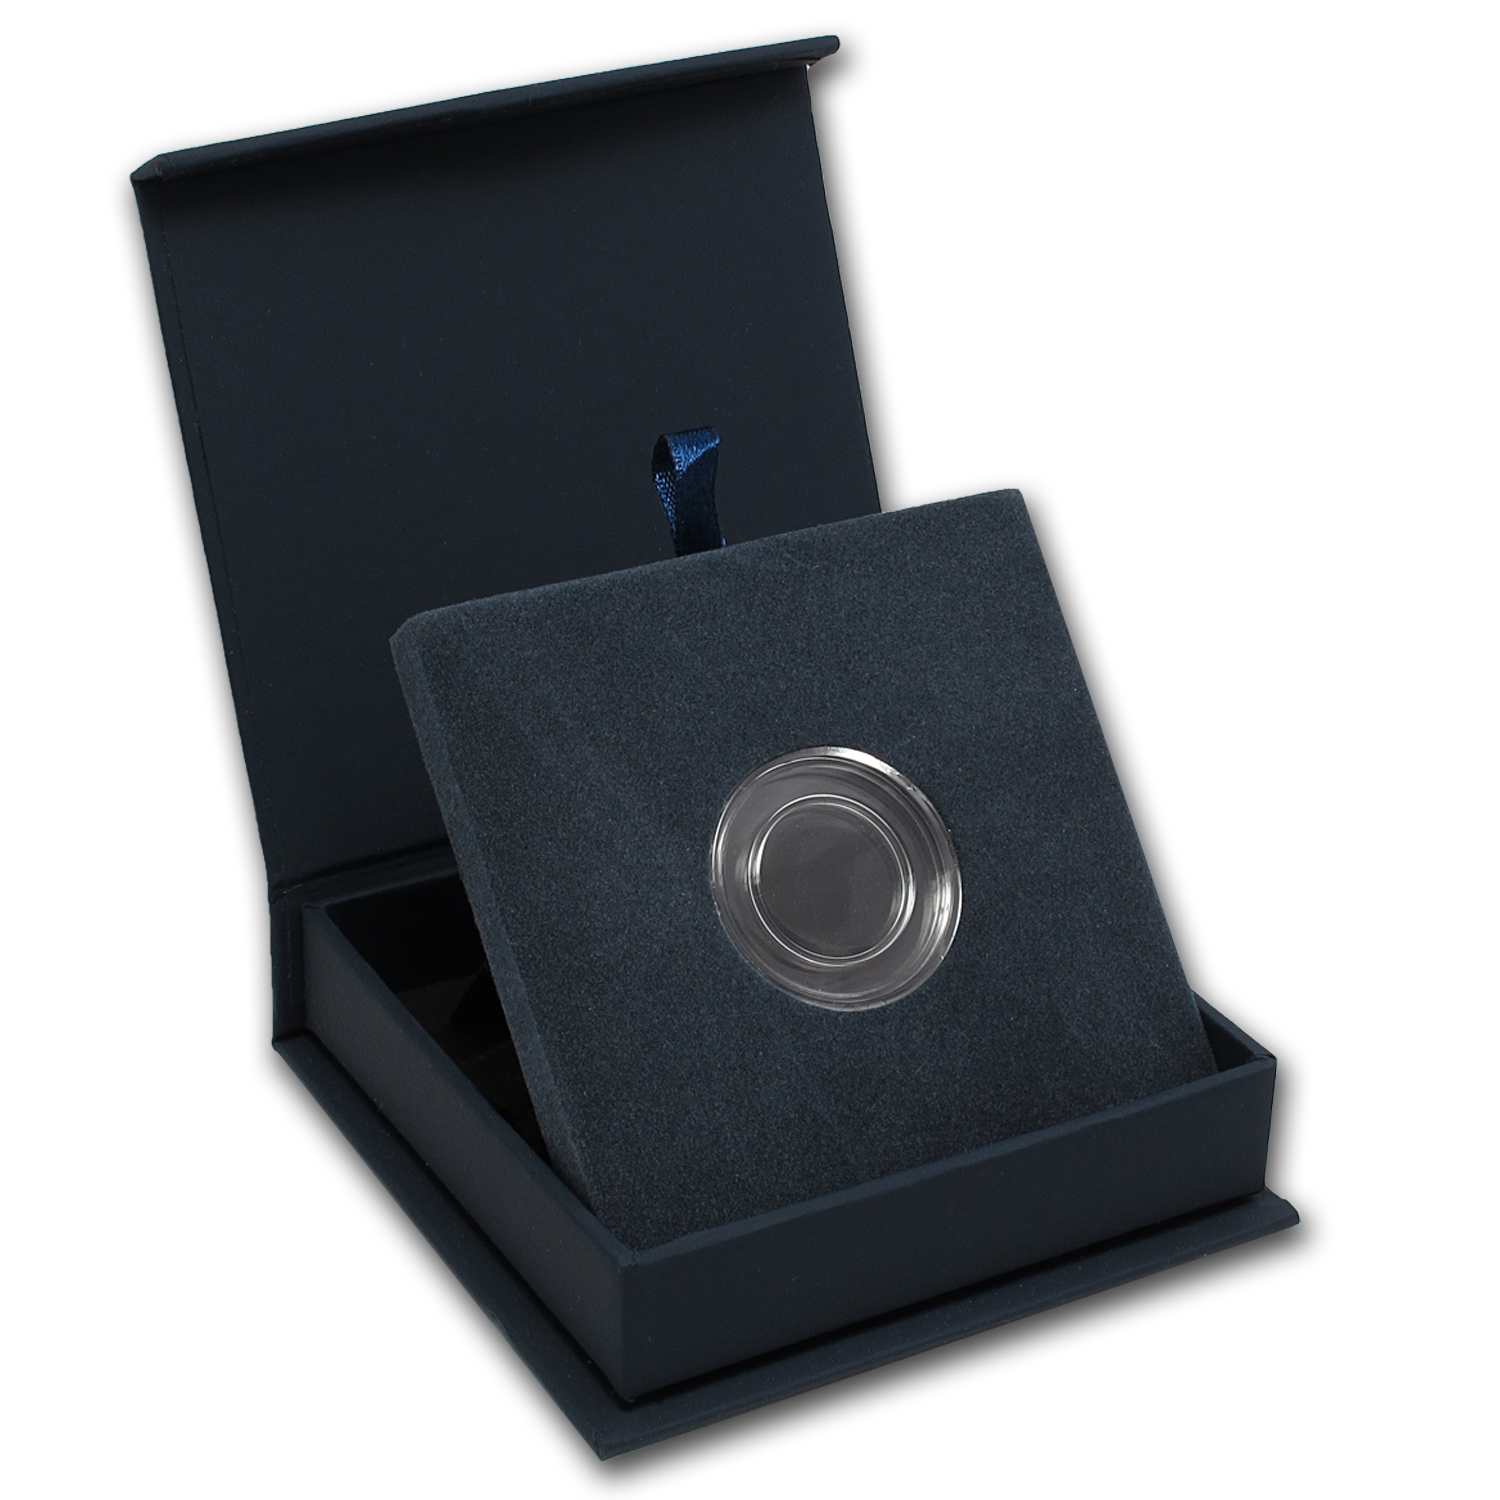 APMEX Gift Box - 18 mm Air-Tite Holder (Direct Fit)